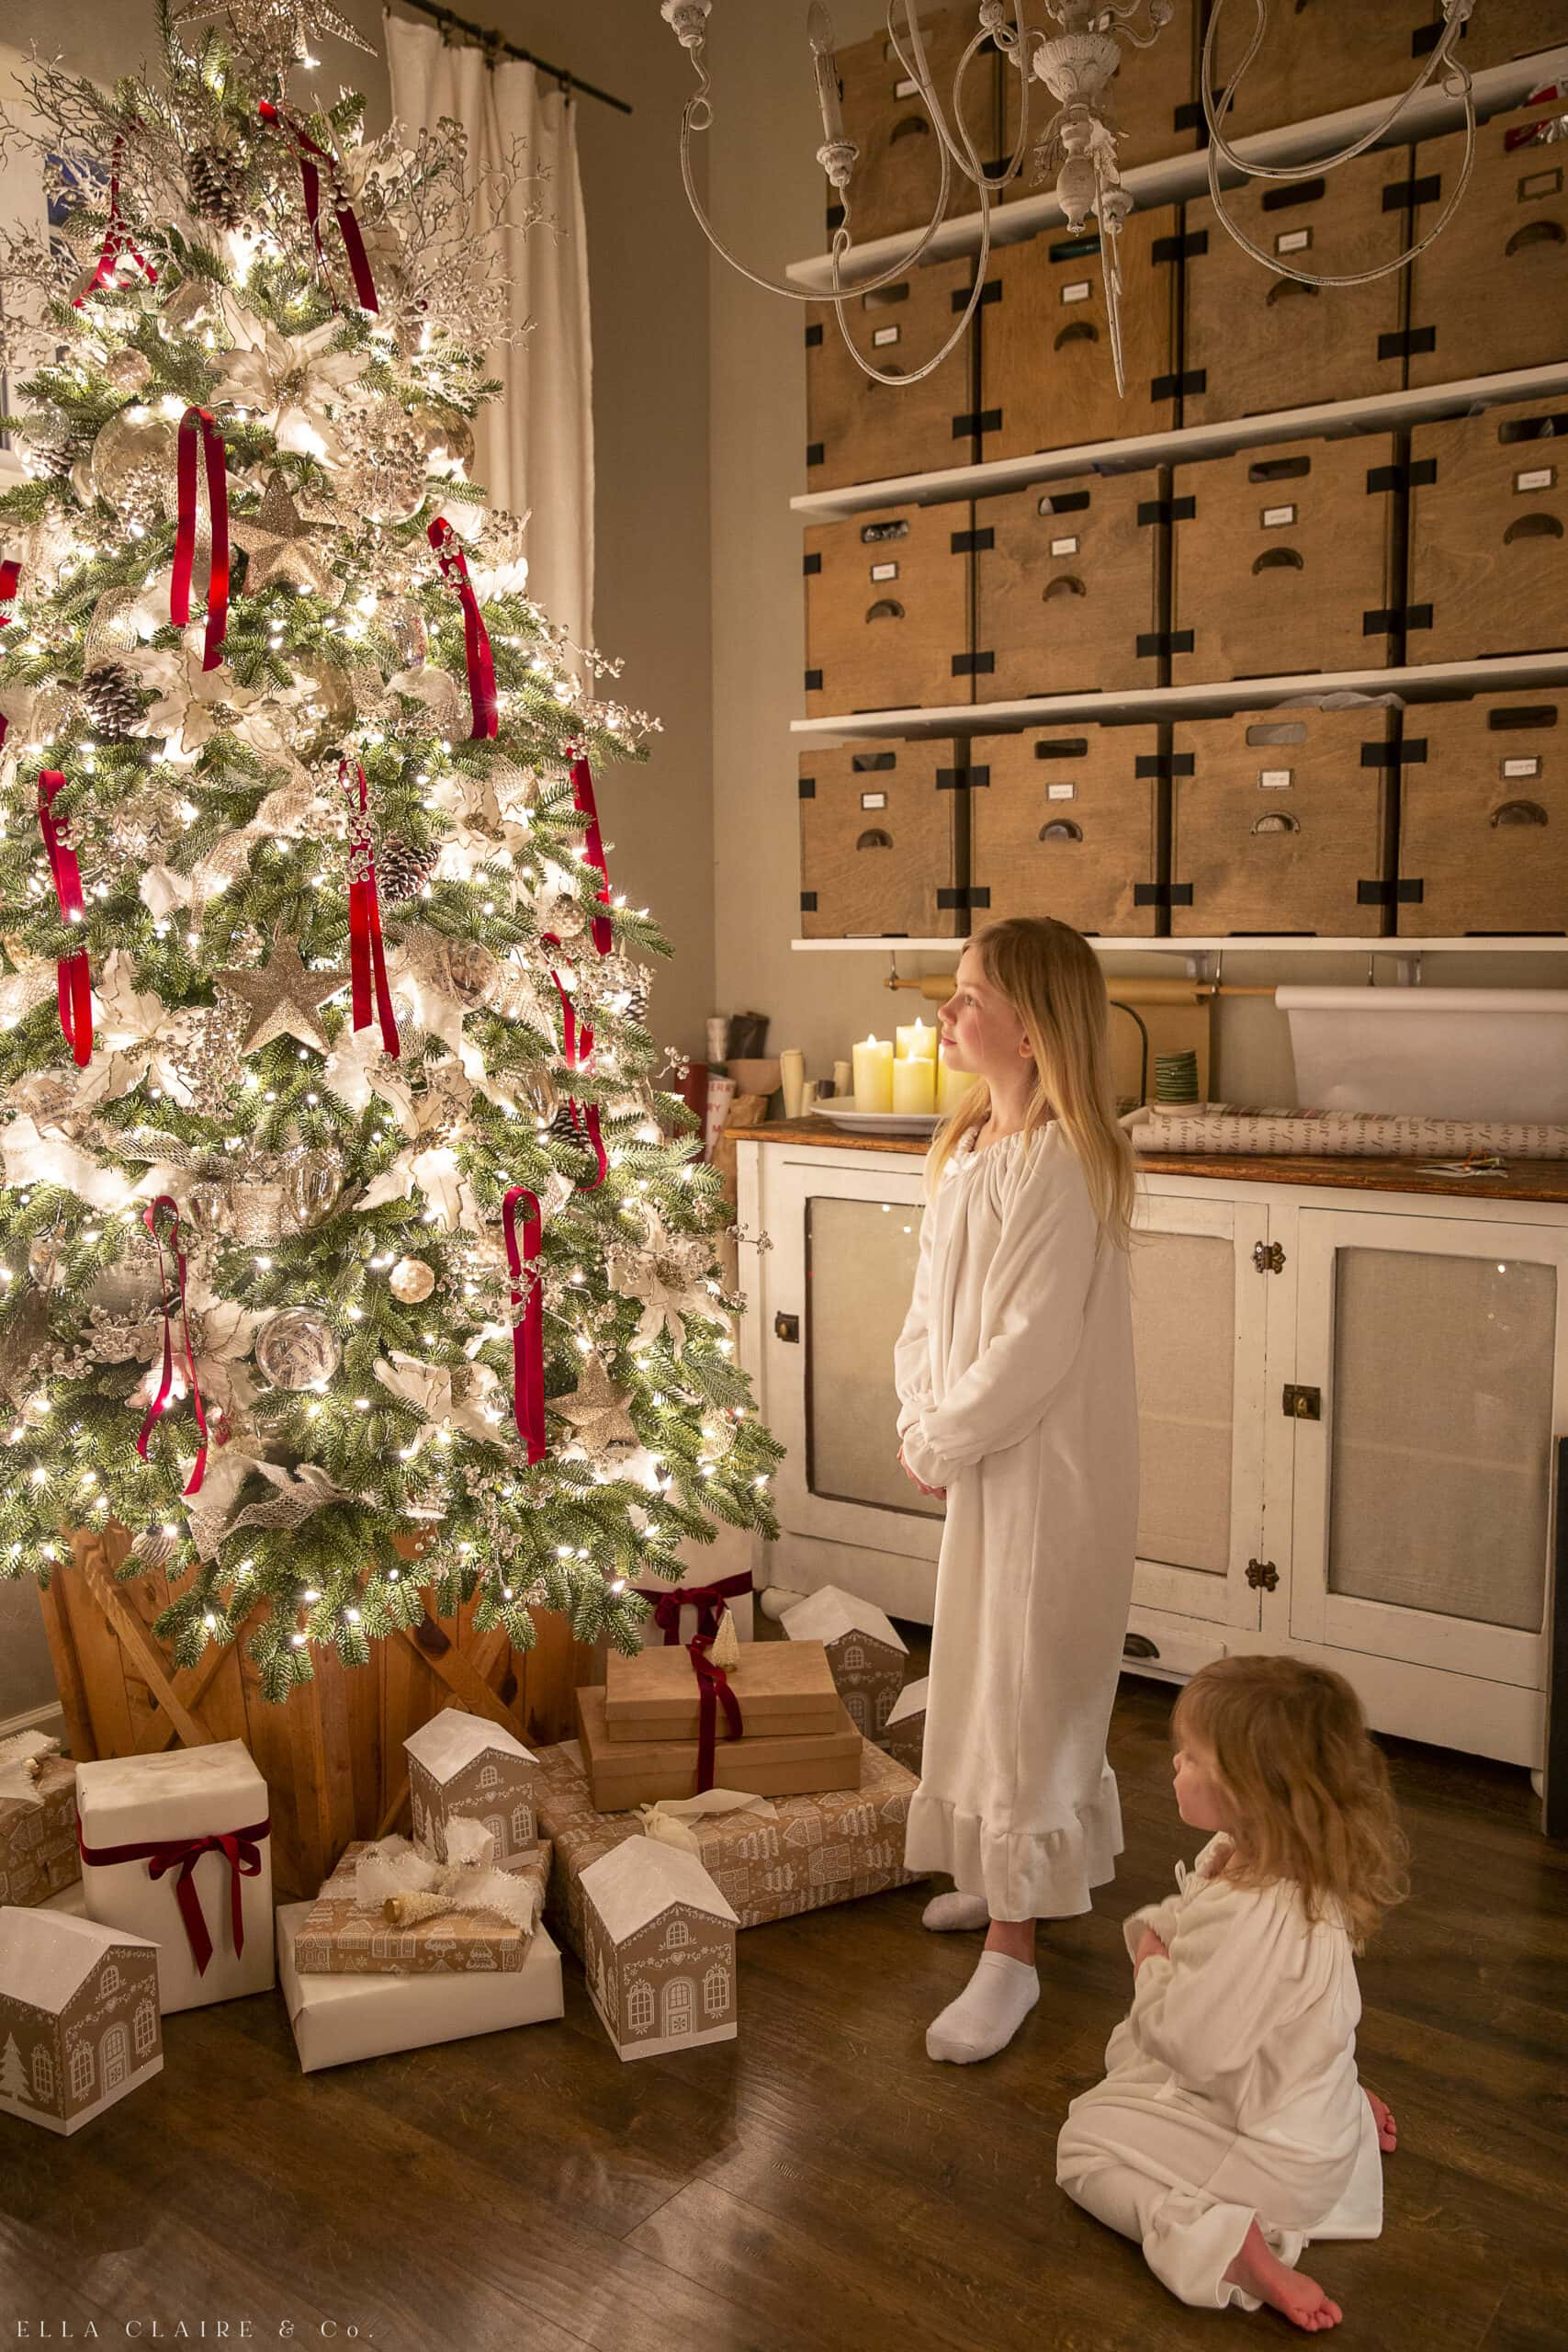 christmas pajamas and looking at the lights of the tree